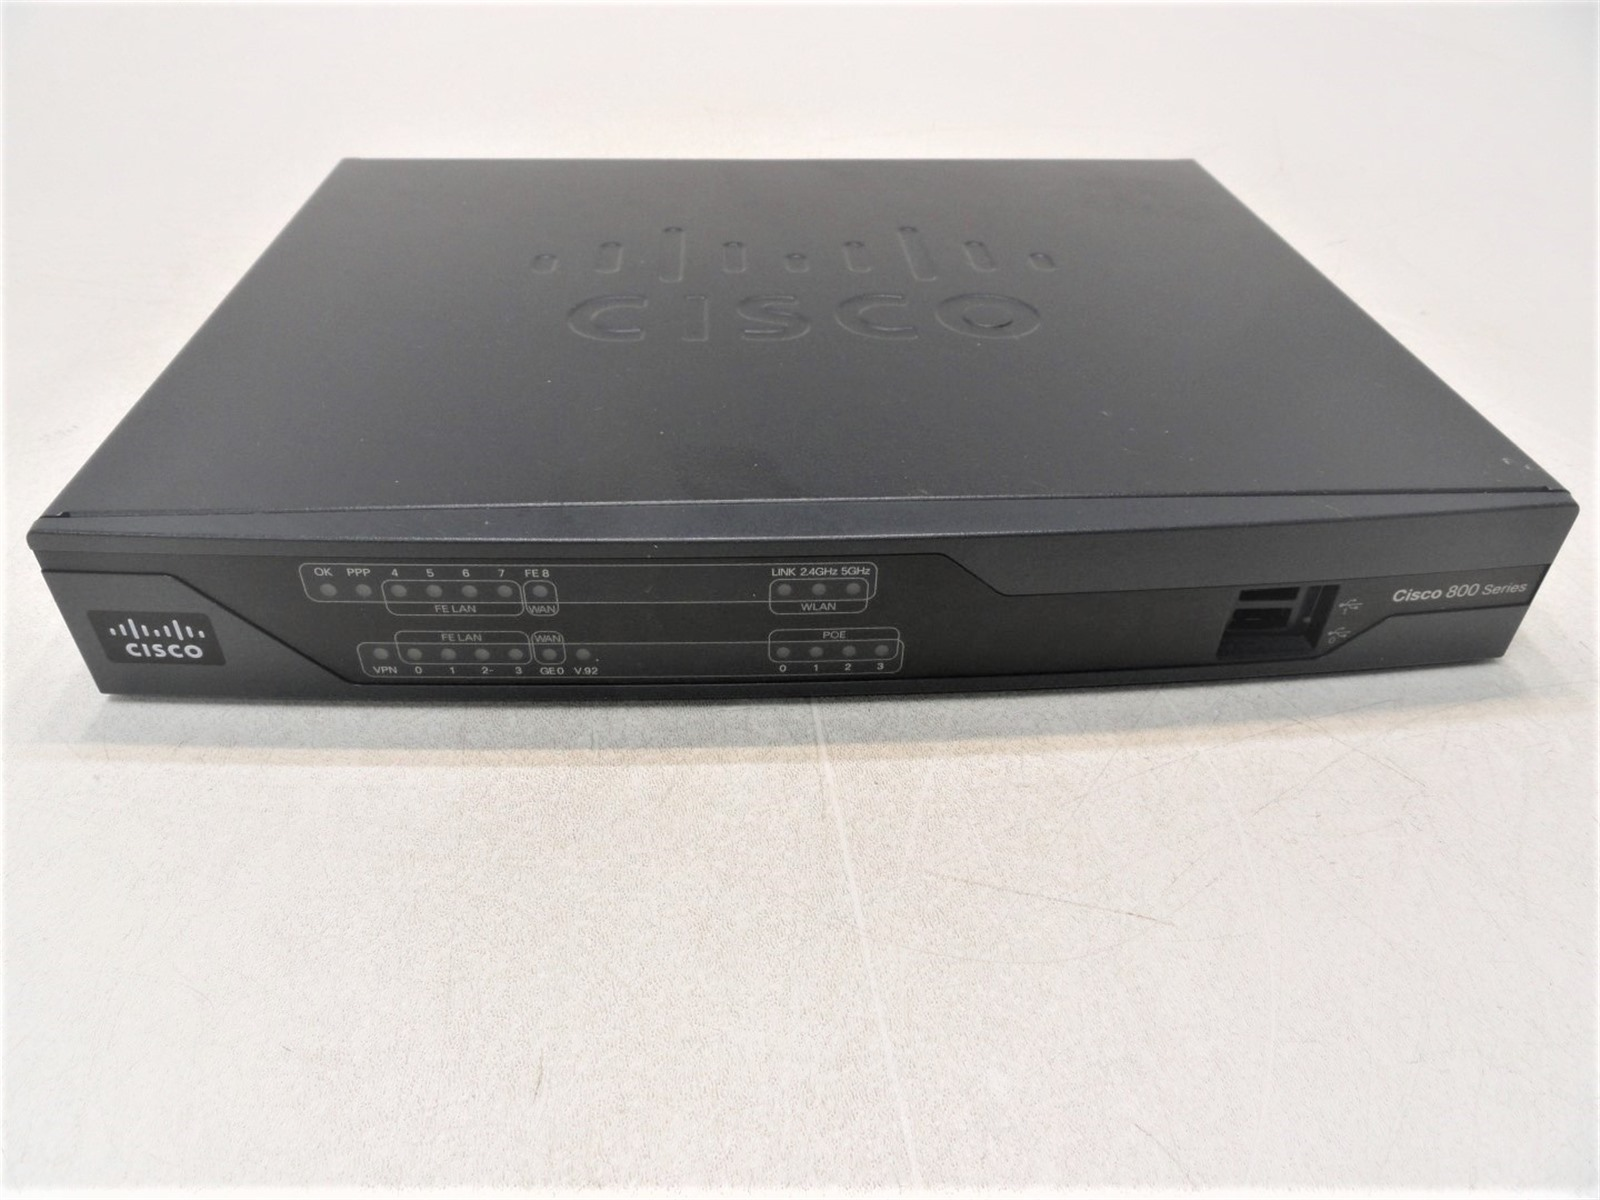 CISCO CISCO891-K9 Fast Ethernet Service Router with 256F//512D